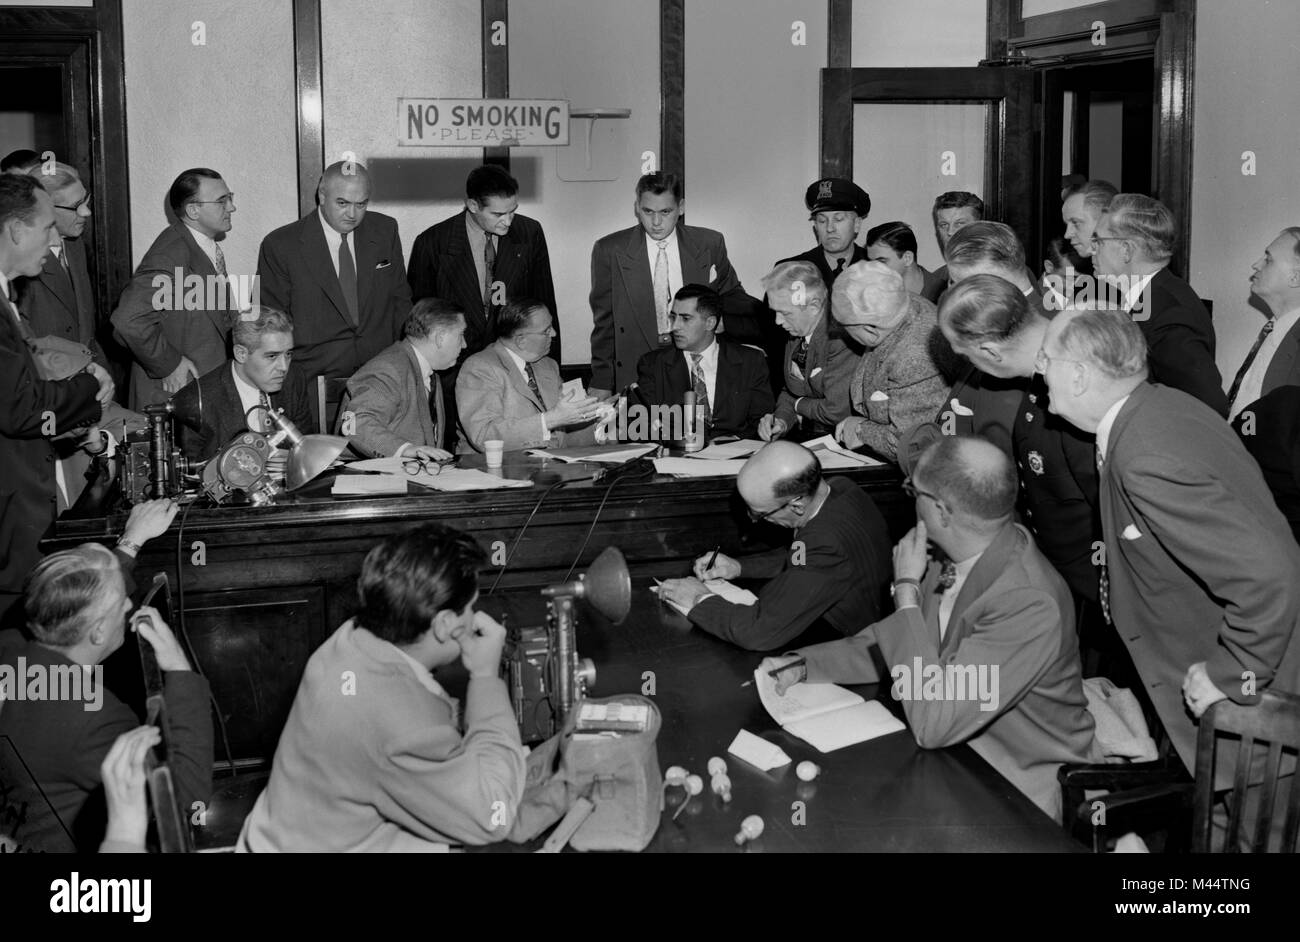 Police inquest draws an interested crowd in a Chicago court building, ca. 1952. - Stock Image